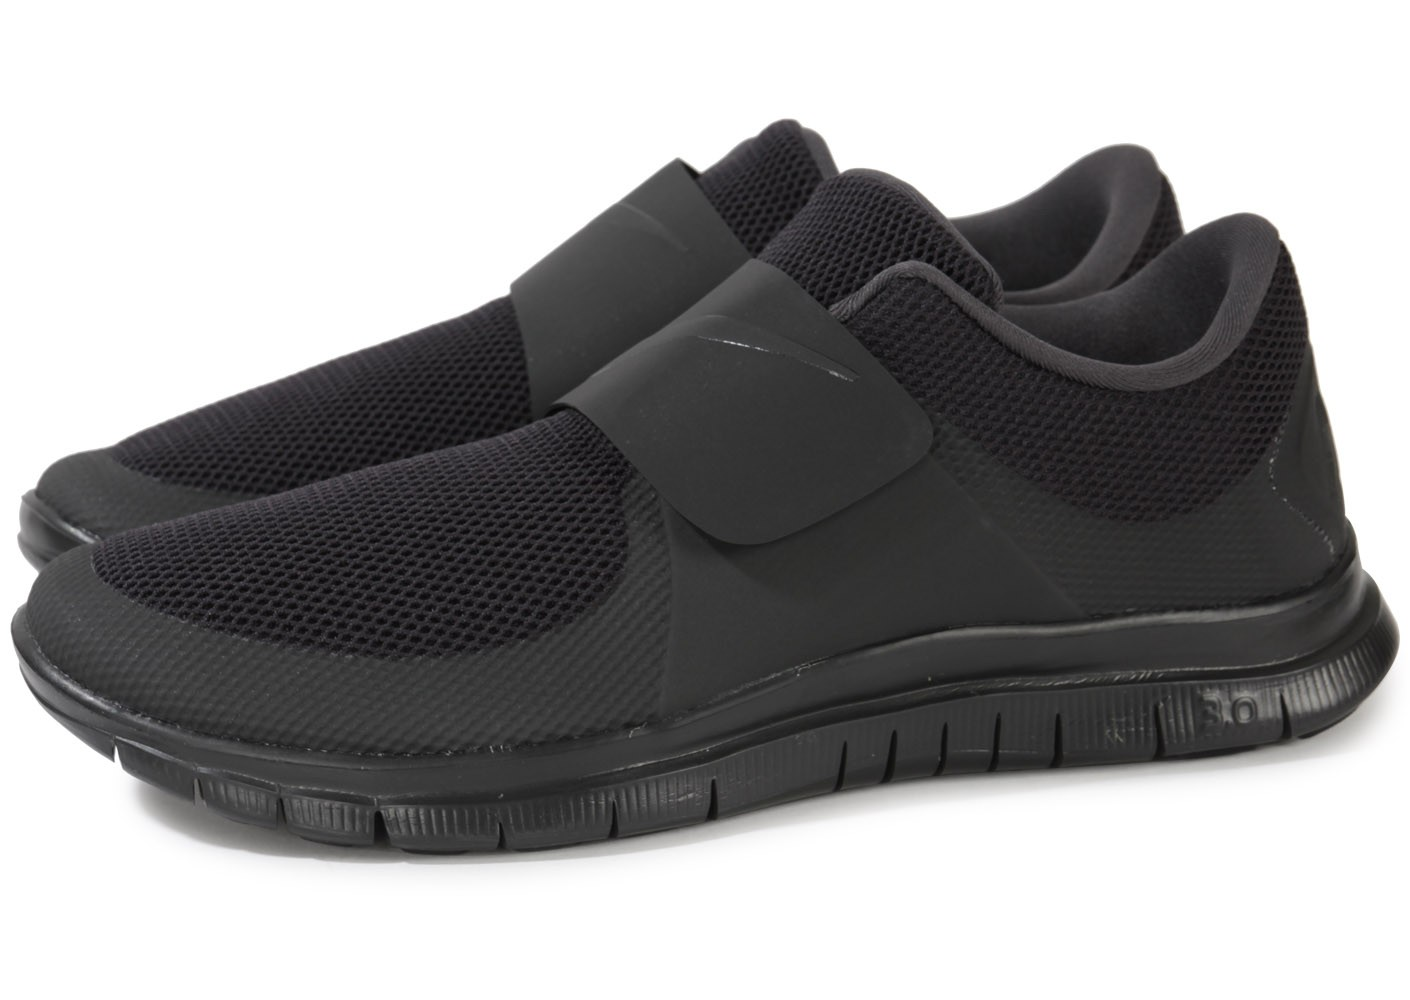 Nike Free Socfly Noire - Chaussures Baskets homme - Chausport